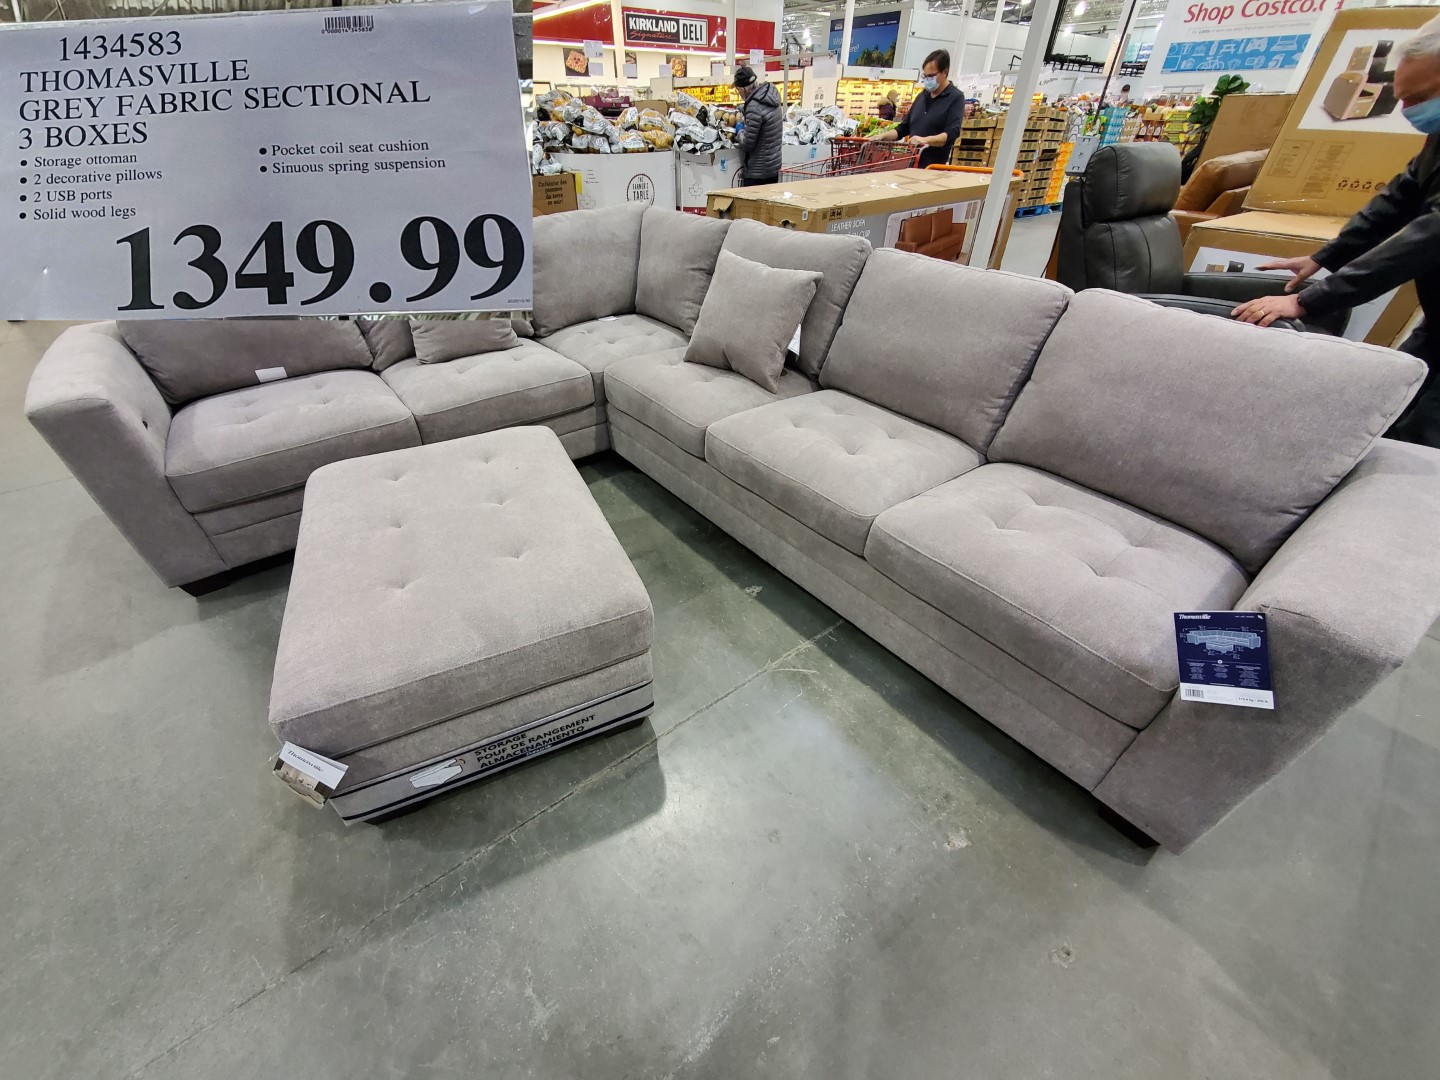 thomasville grey fabric sectional